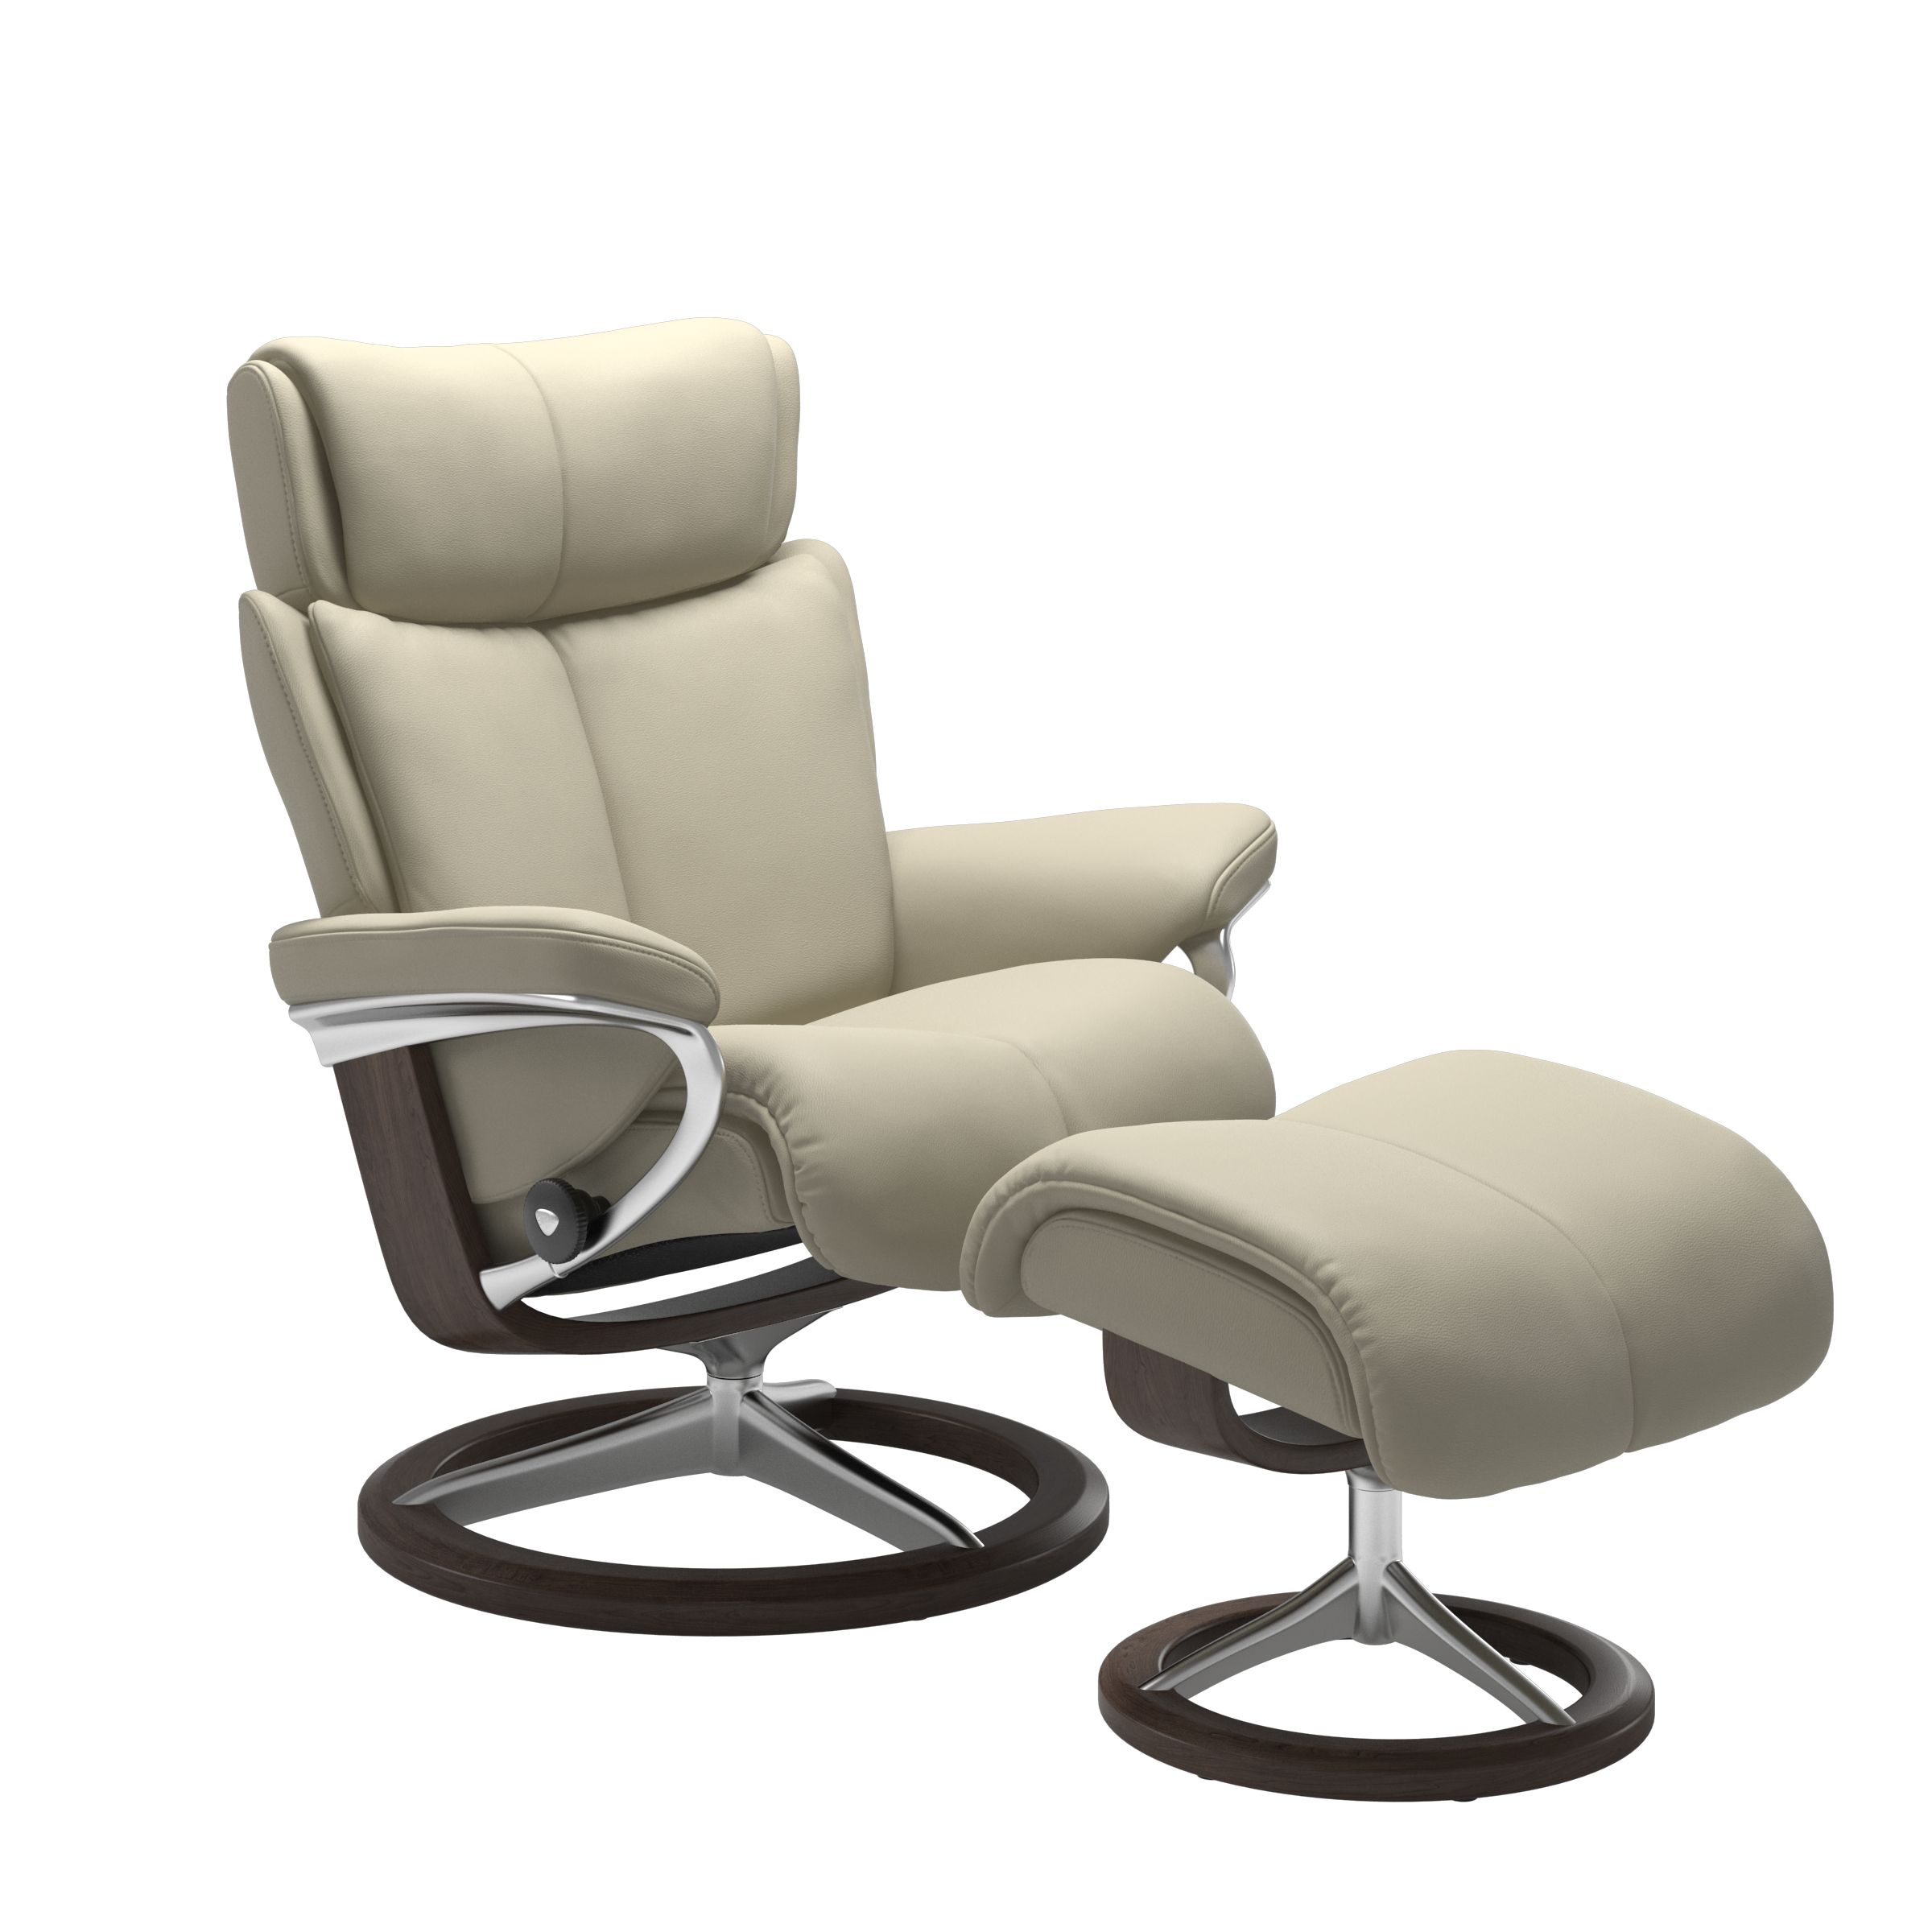 Stressless Stuhl Stressless Magic Relaxsessel